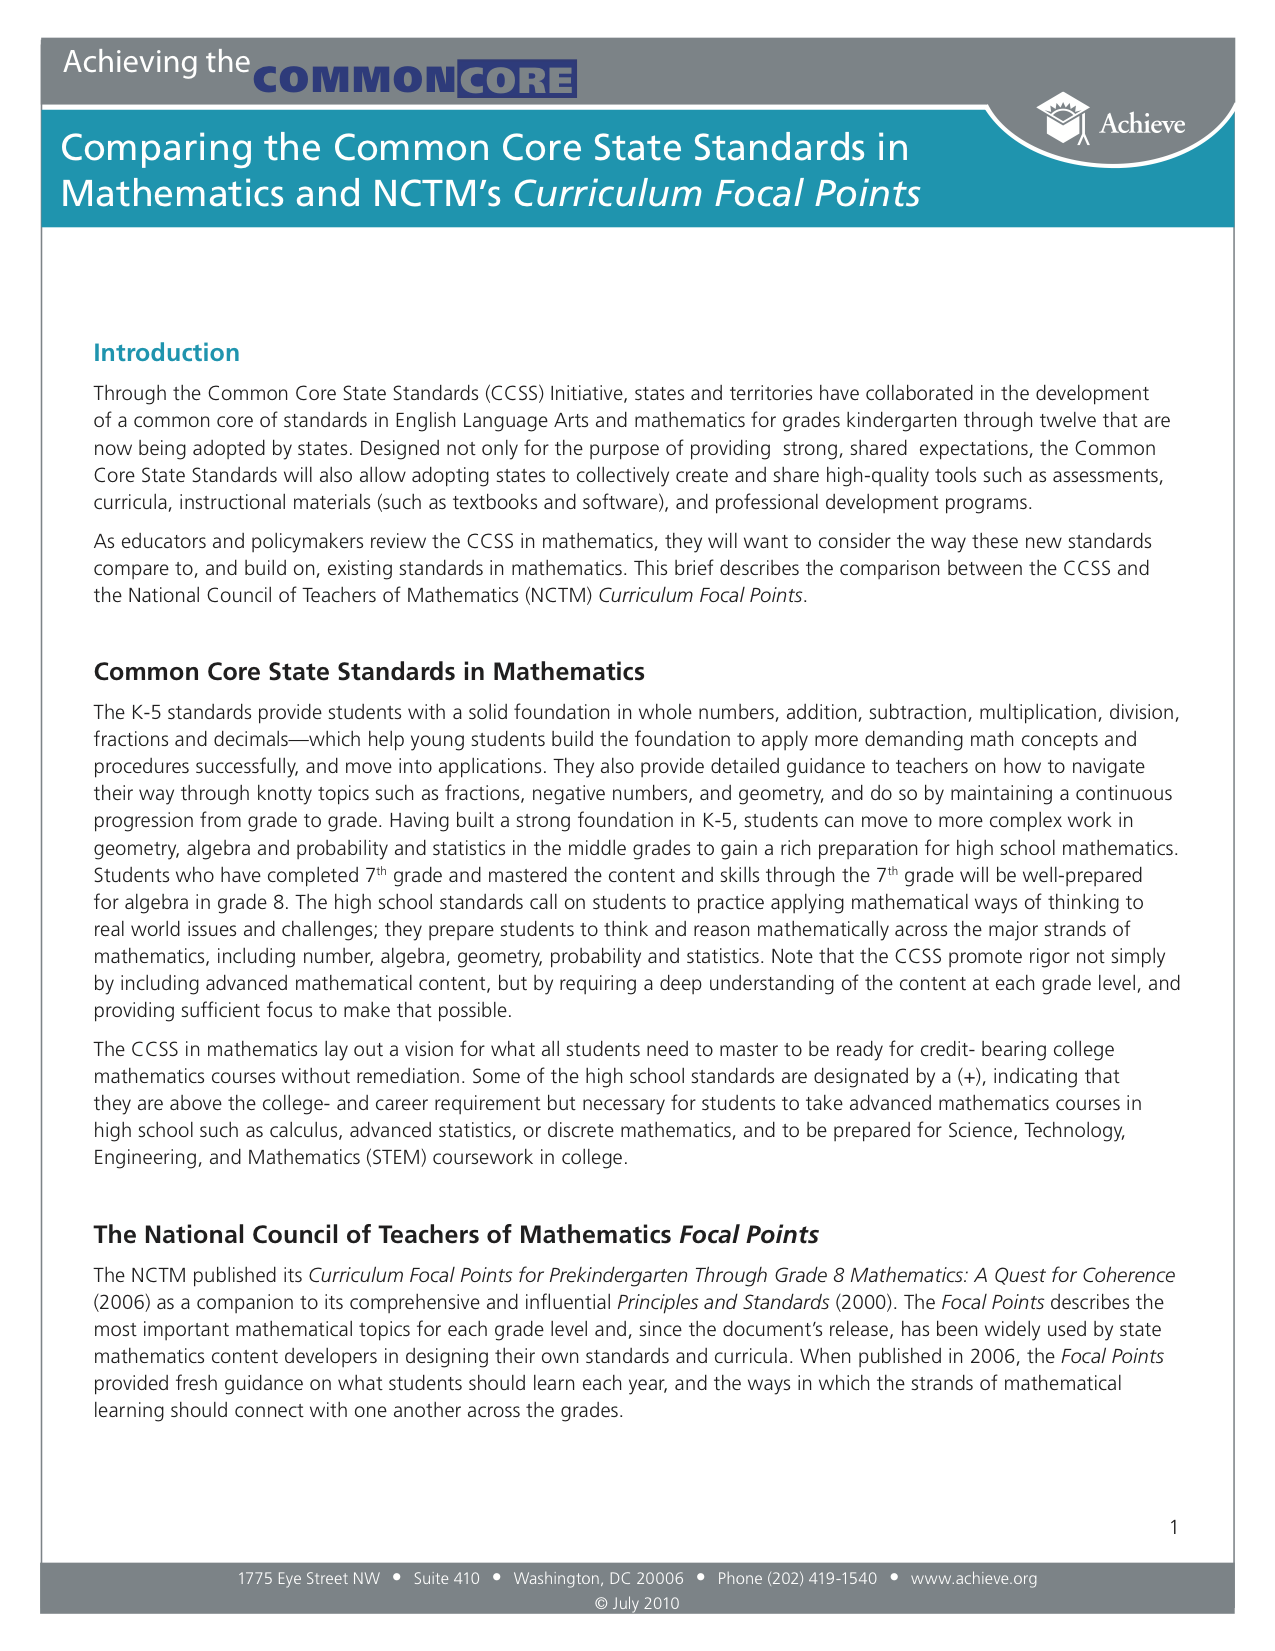 Cover of Comparing the Common Core State Standards in Mathematics and NCTM's Curriculum Focal Points